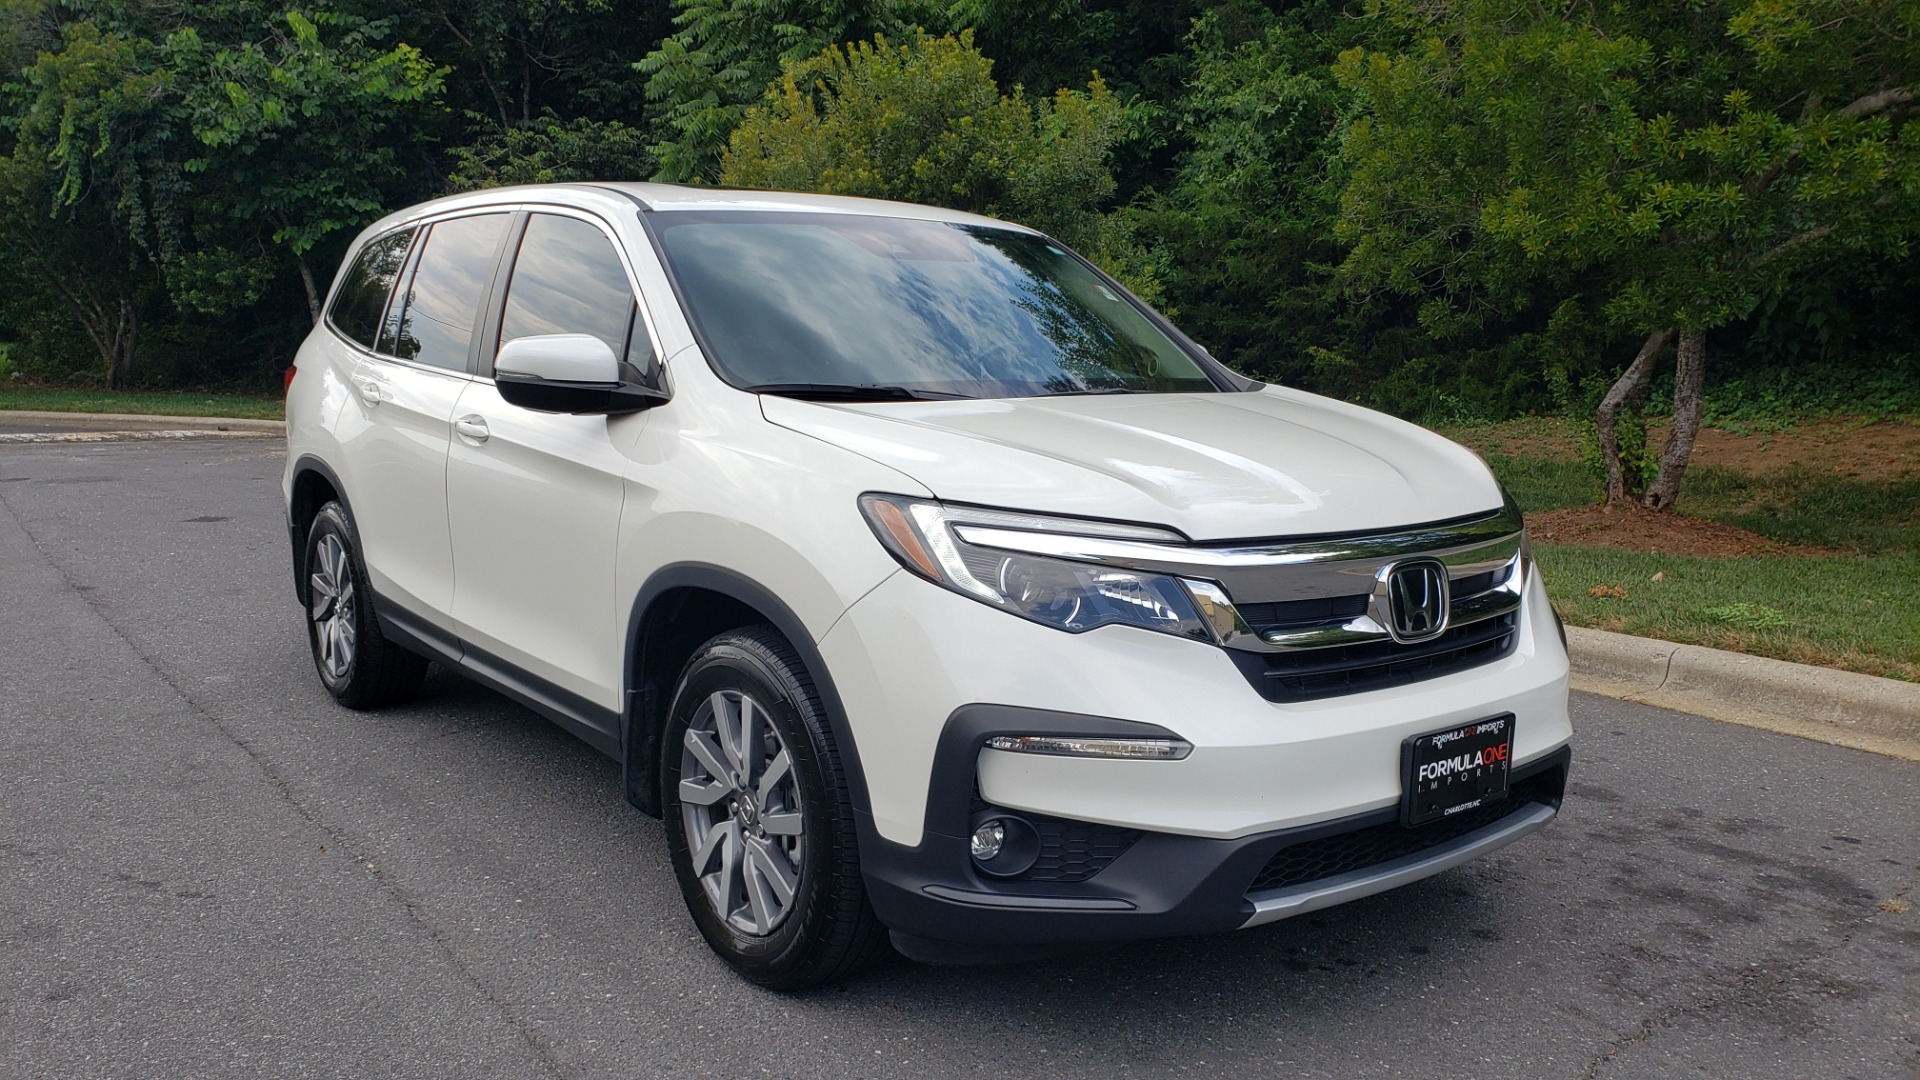 Used 2019 Honda PILOT EX-L / V6 / NAV / SUNROOF / DVD / 3-ROW / REARVIEW for sale Sold at Formula Imports in Charlotte NC 28227 4